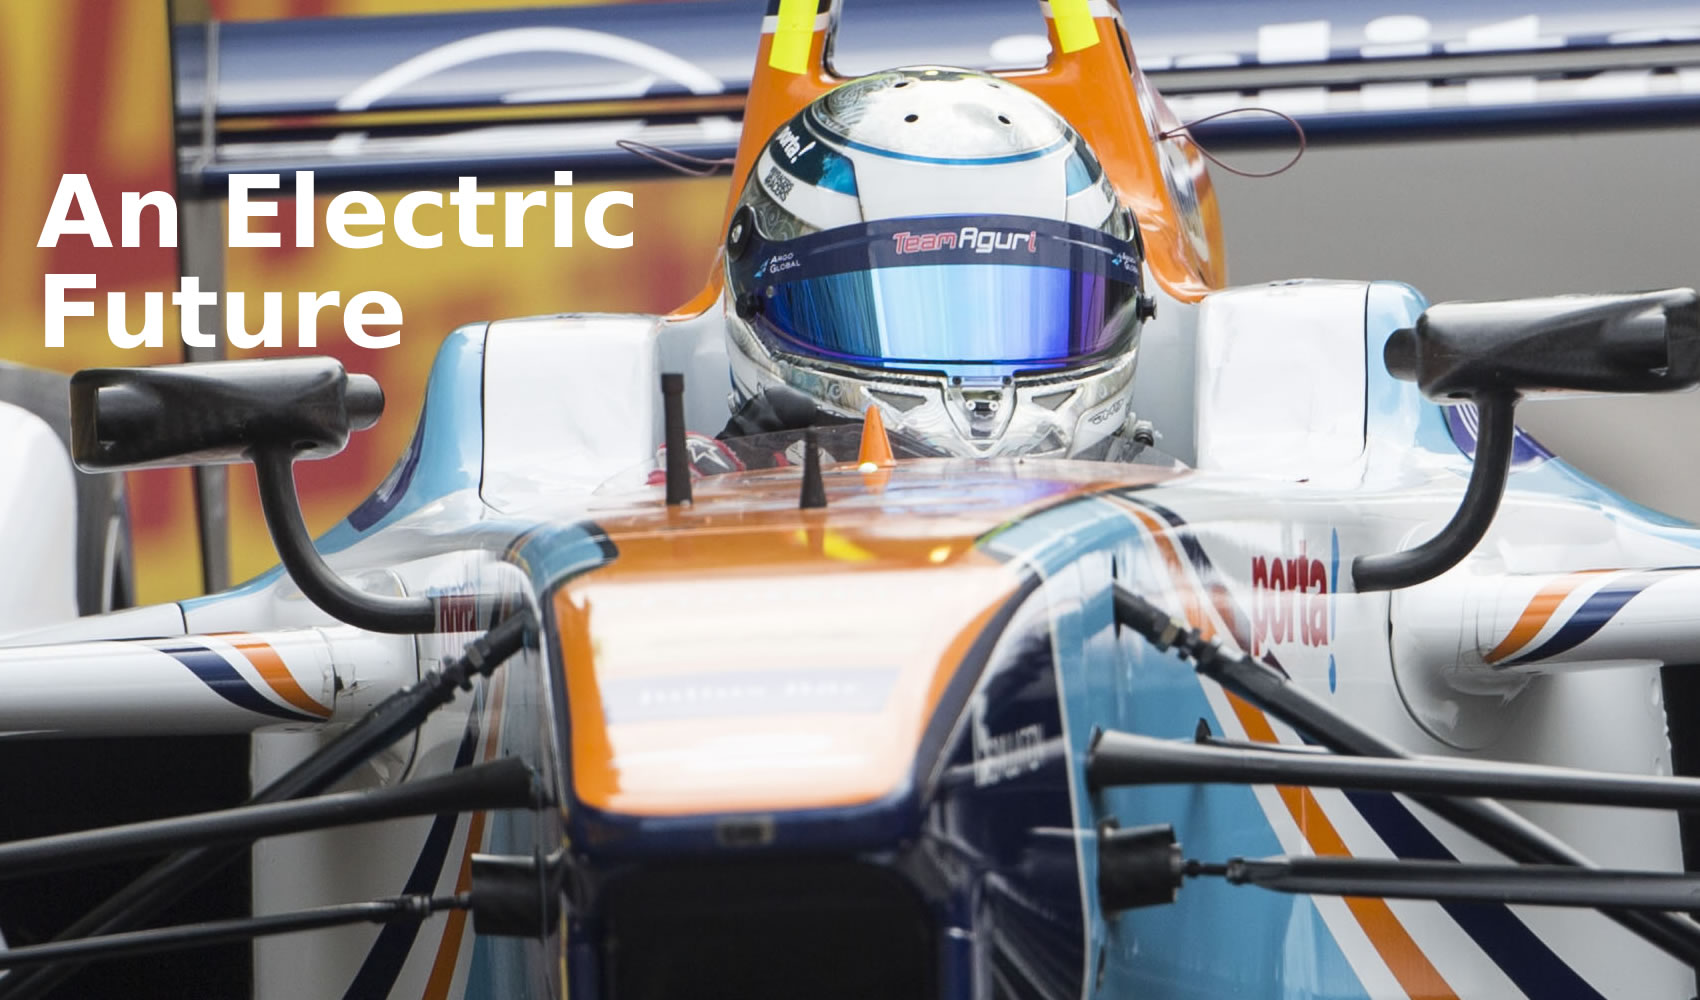 The future of racing is electrifying! Berlin ePrix 2016 - image source/courtesy FIA Formula E Championship